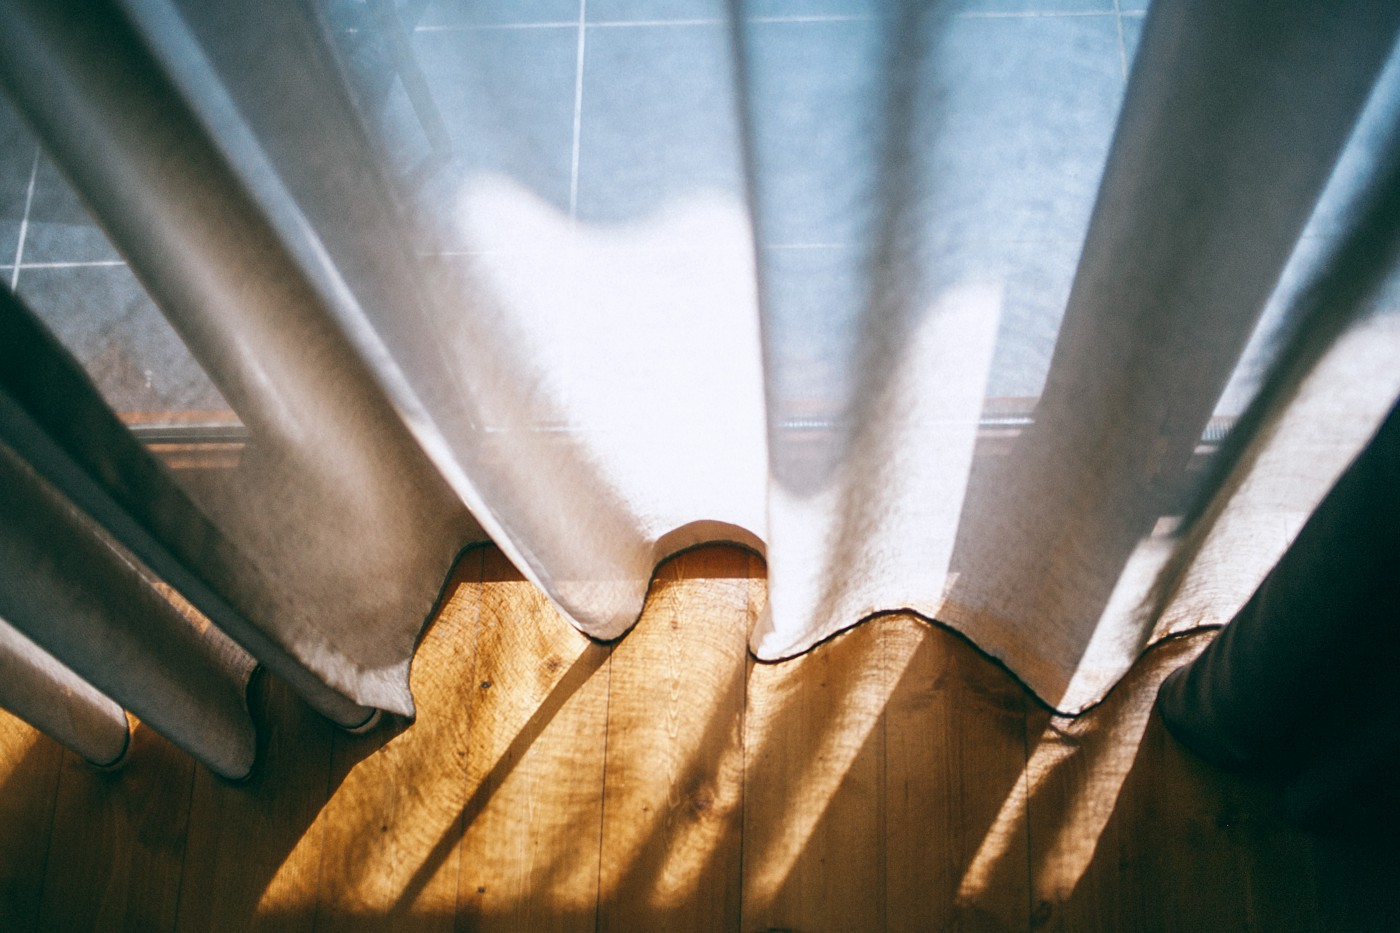 Sunlight streams through curtains behind a window.